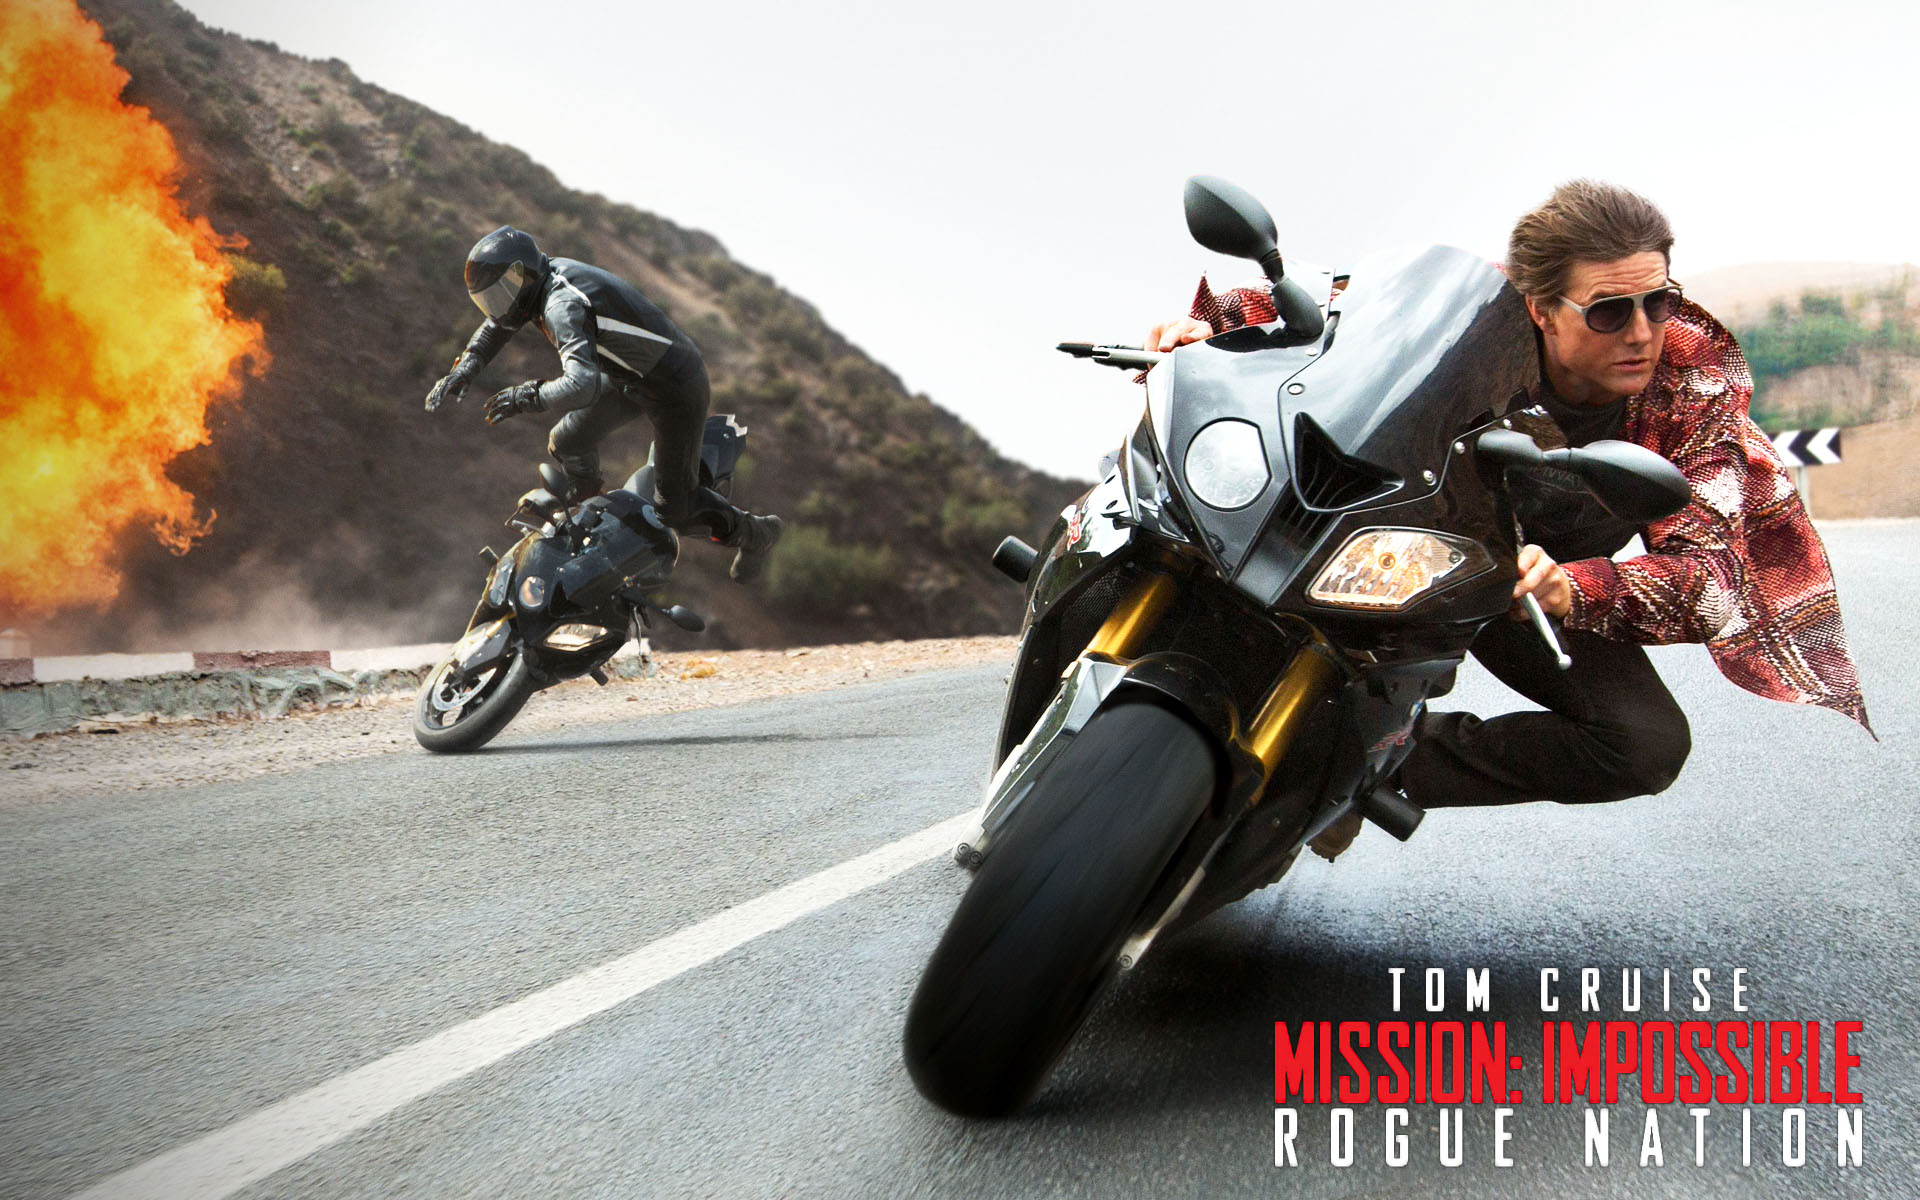 REVIEW: Mission: Impossible Rogue Nation, Duel Tom Cruise Vs Syndicate Teroris